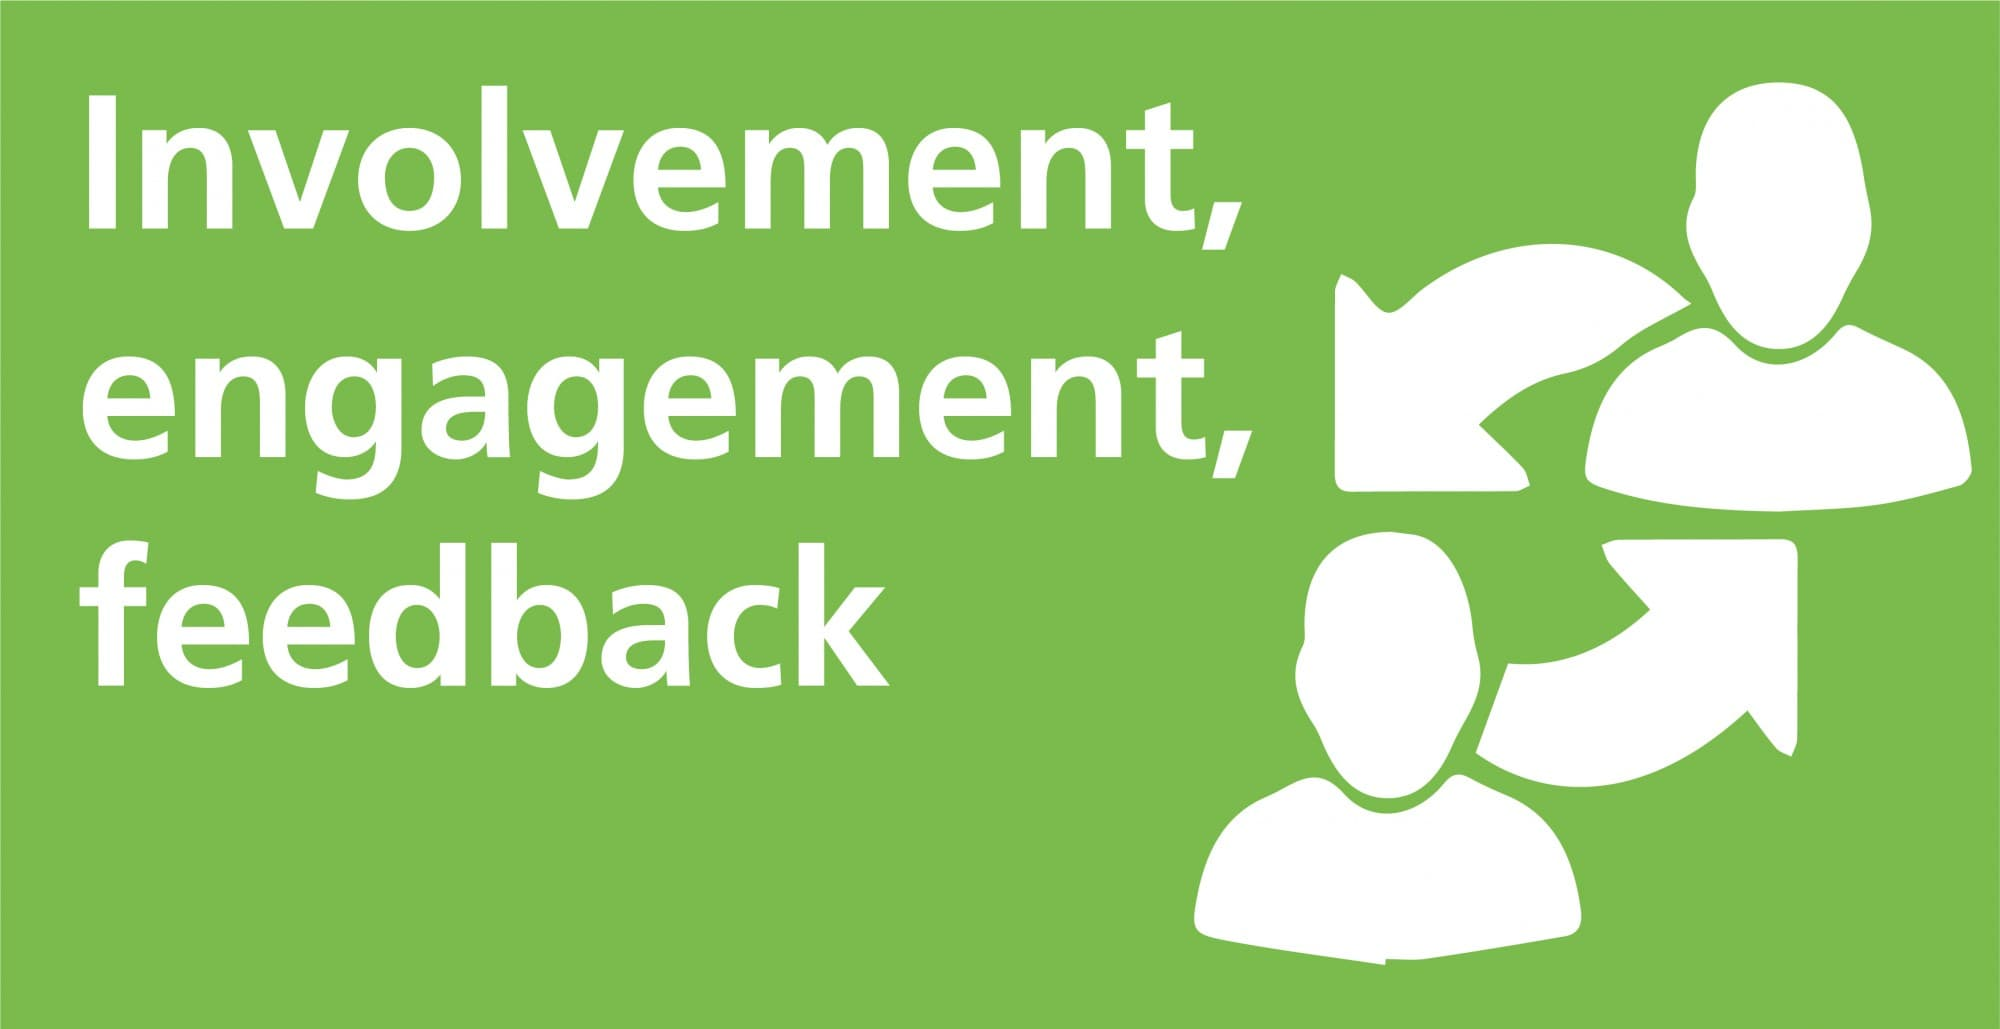 Involvement, engagement, feedback